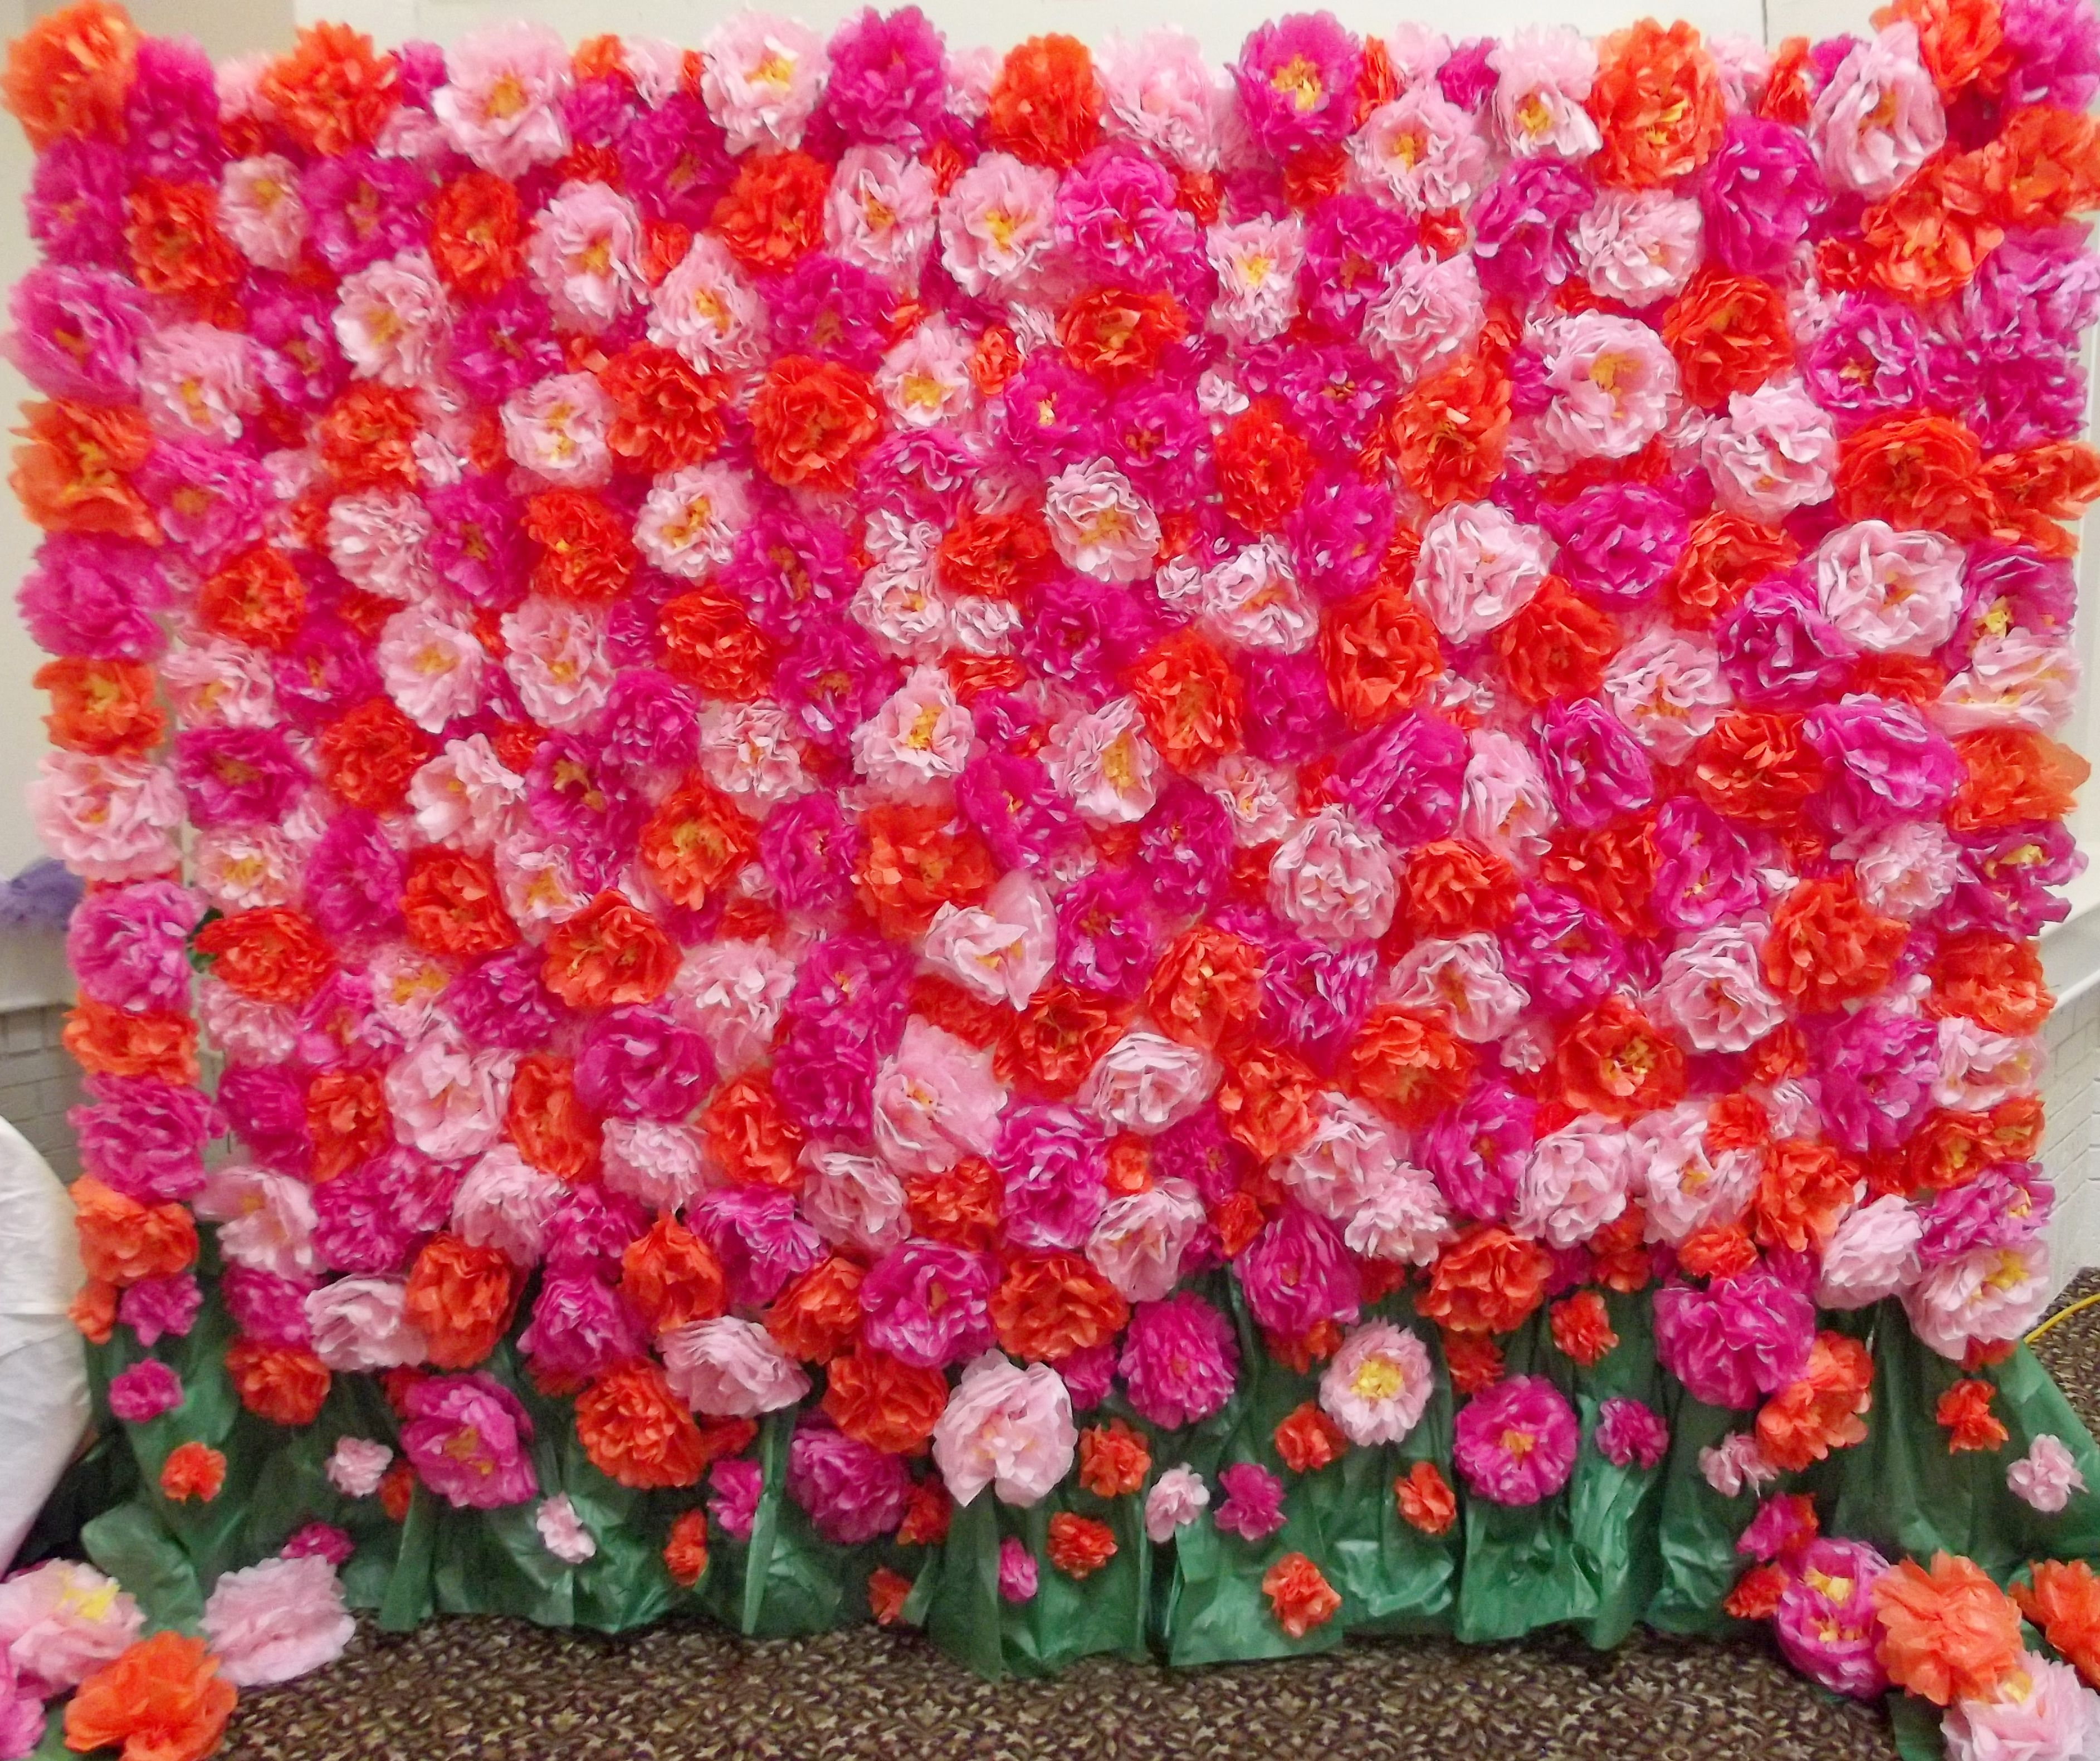 Flower wall photo backdrop hundreds of hand made tissue paper flower wall photo backdrop hundreds of hand made tissue paper flowers took over two weeks to make but worth every second mightylinksfo